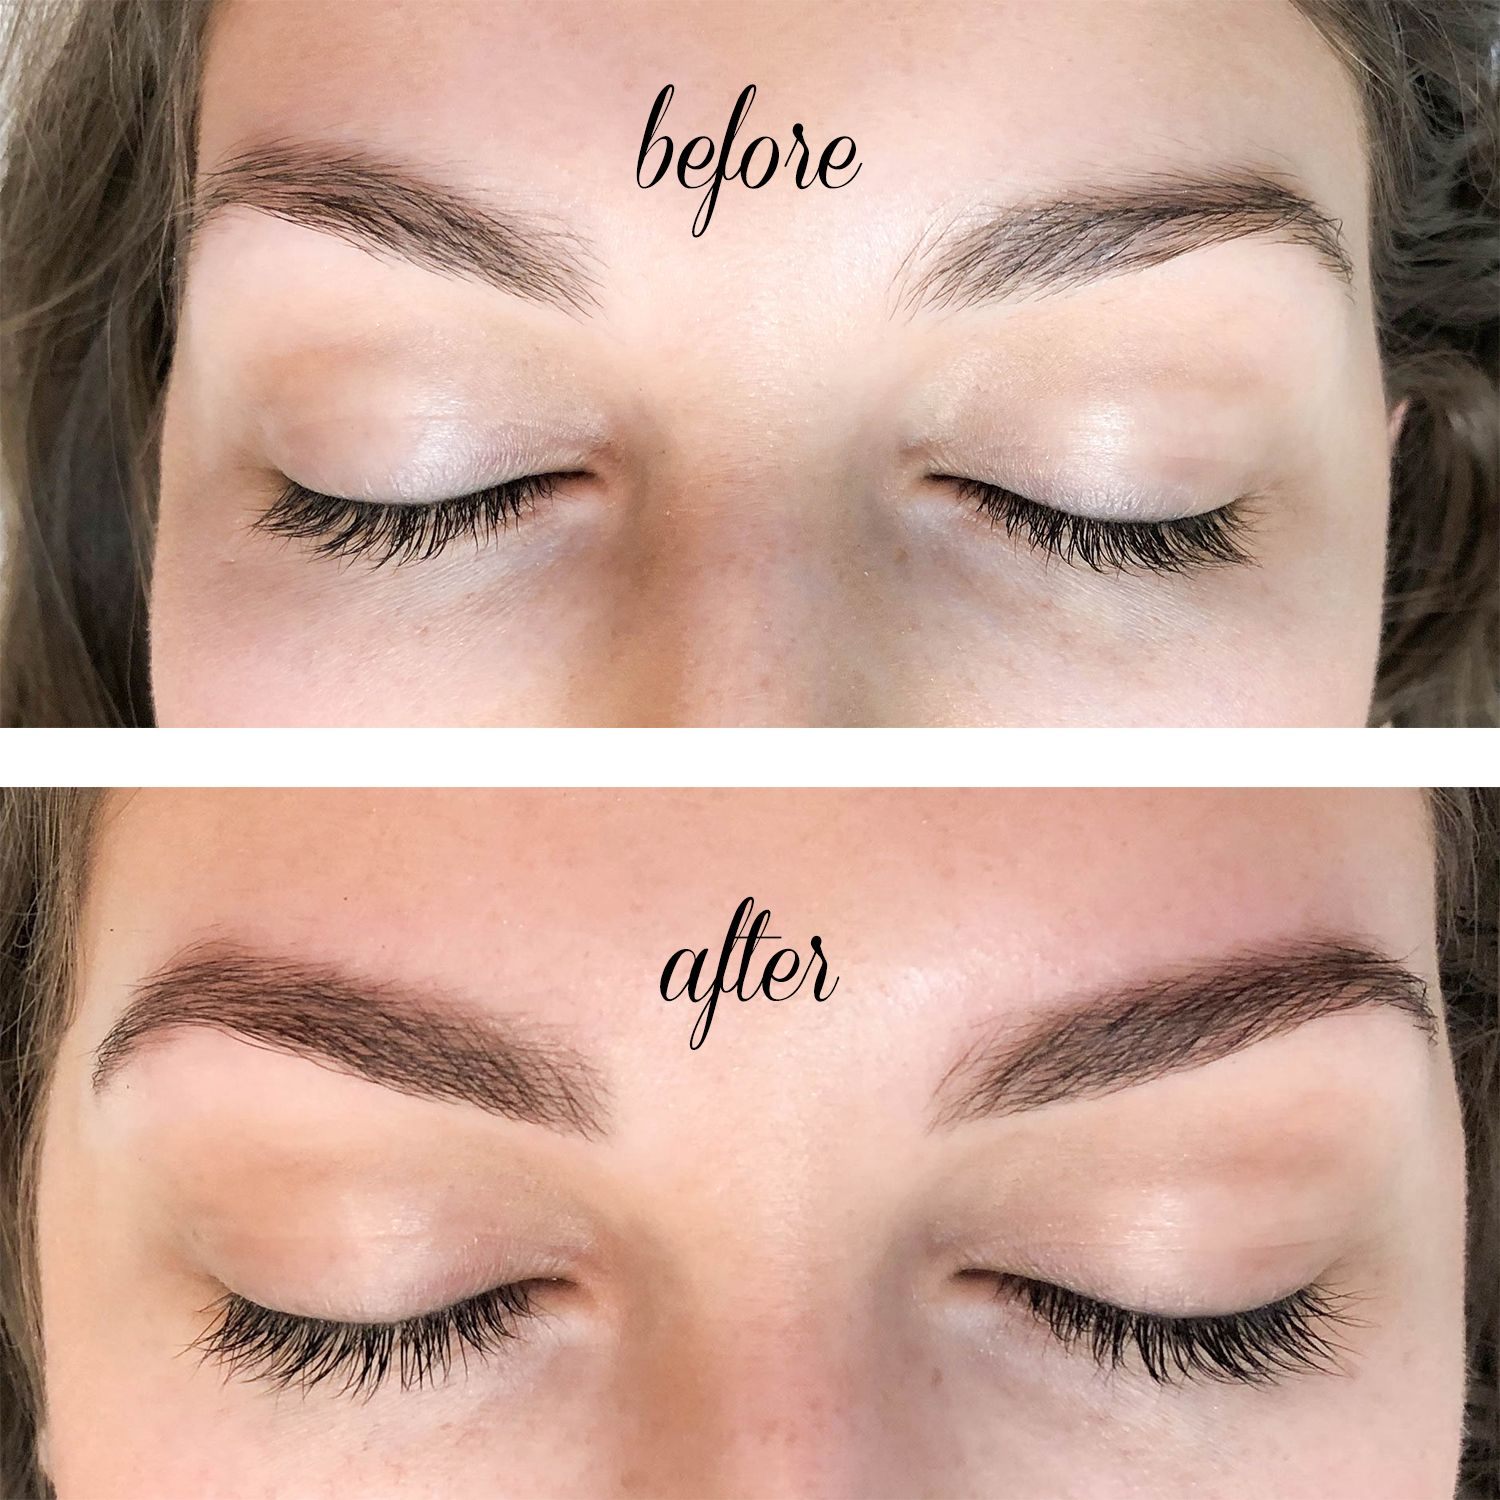 Before After Tinted Brows Lashes Feat Waxing The City Lash And Brow Tint Brow Wax Brow Tinting